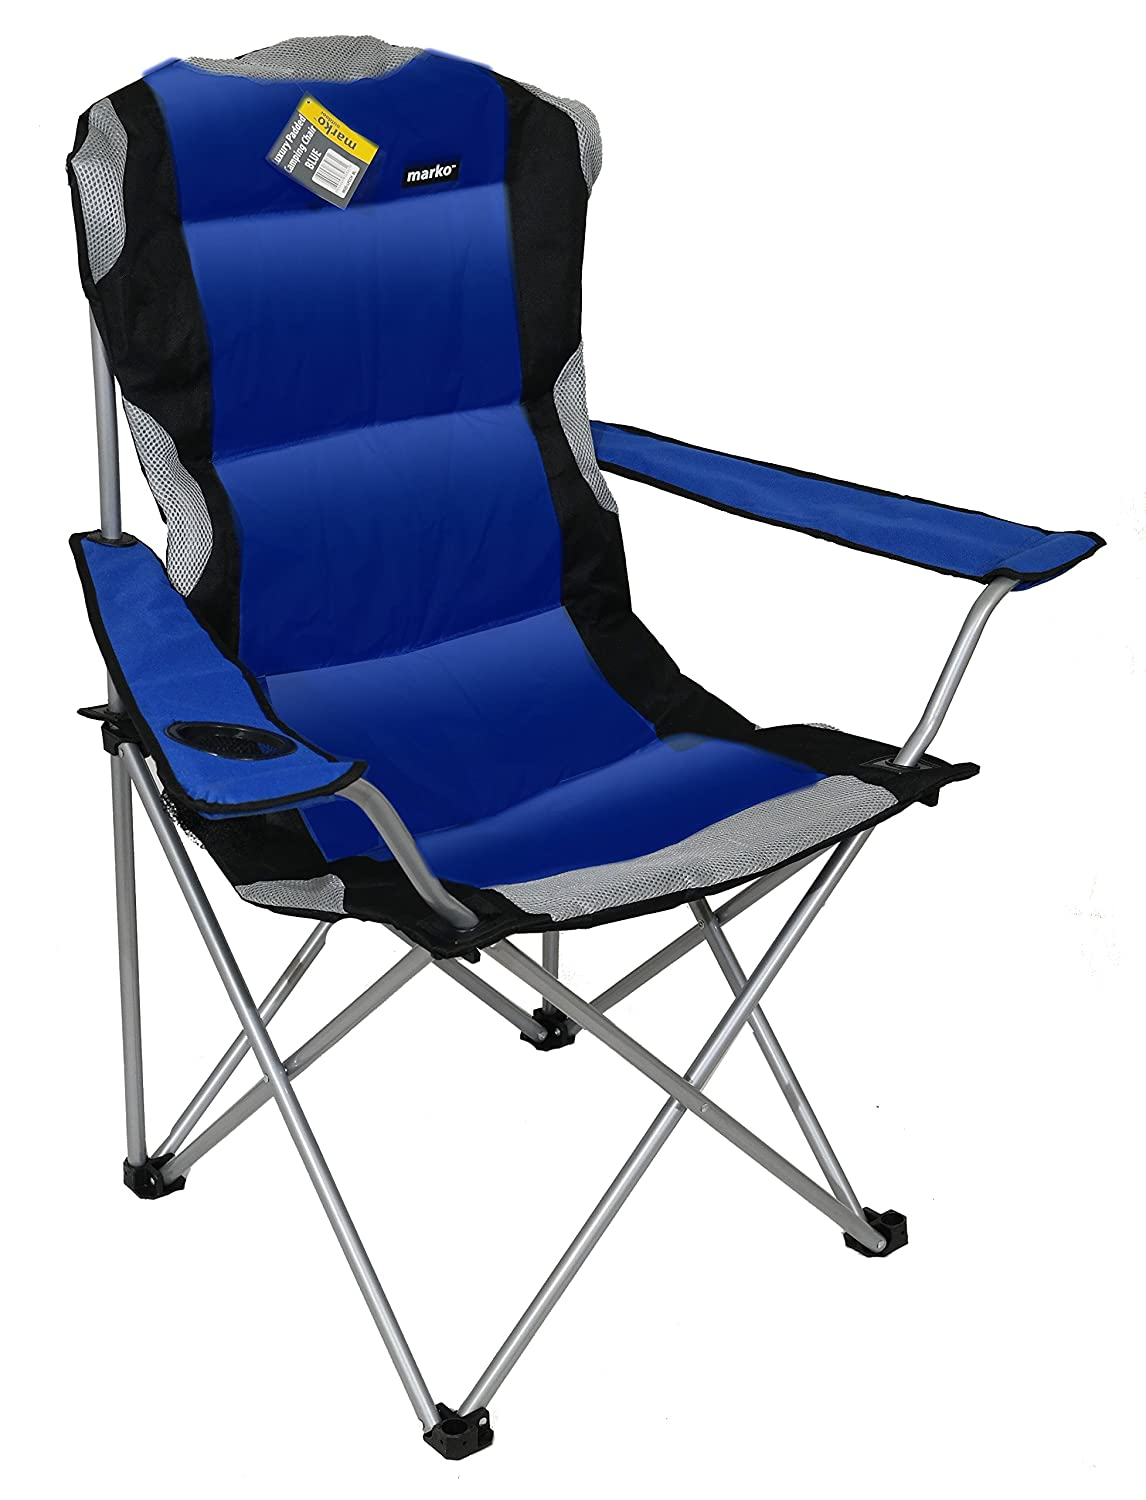 Blue Luxury Padded Folding Camping Chairs Fishing Festivals Garden SUMMER